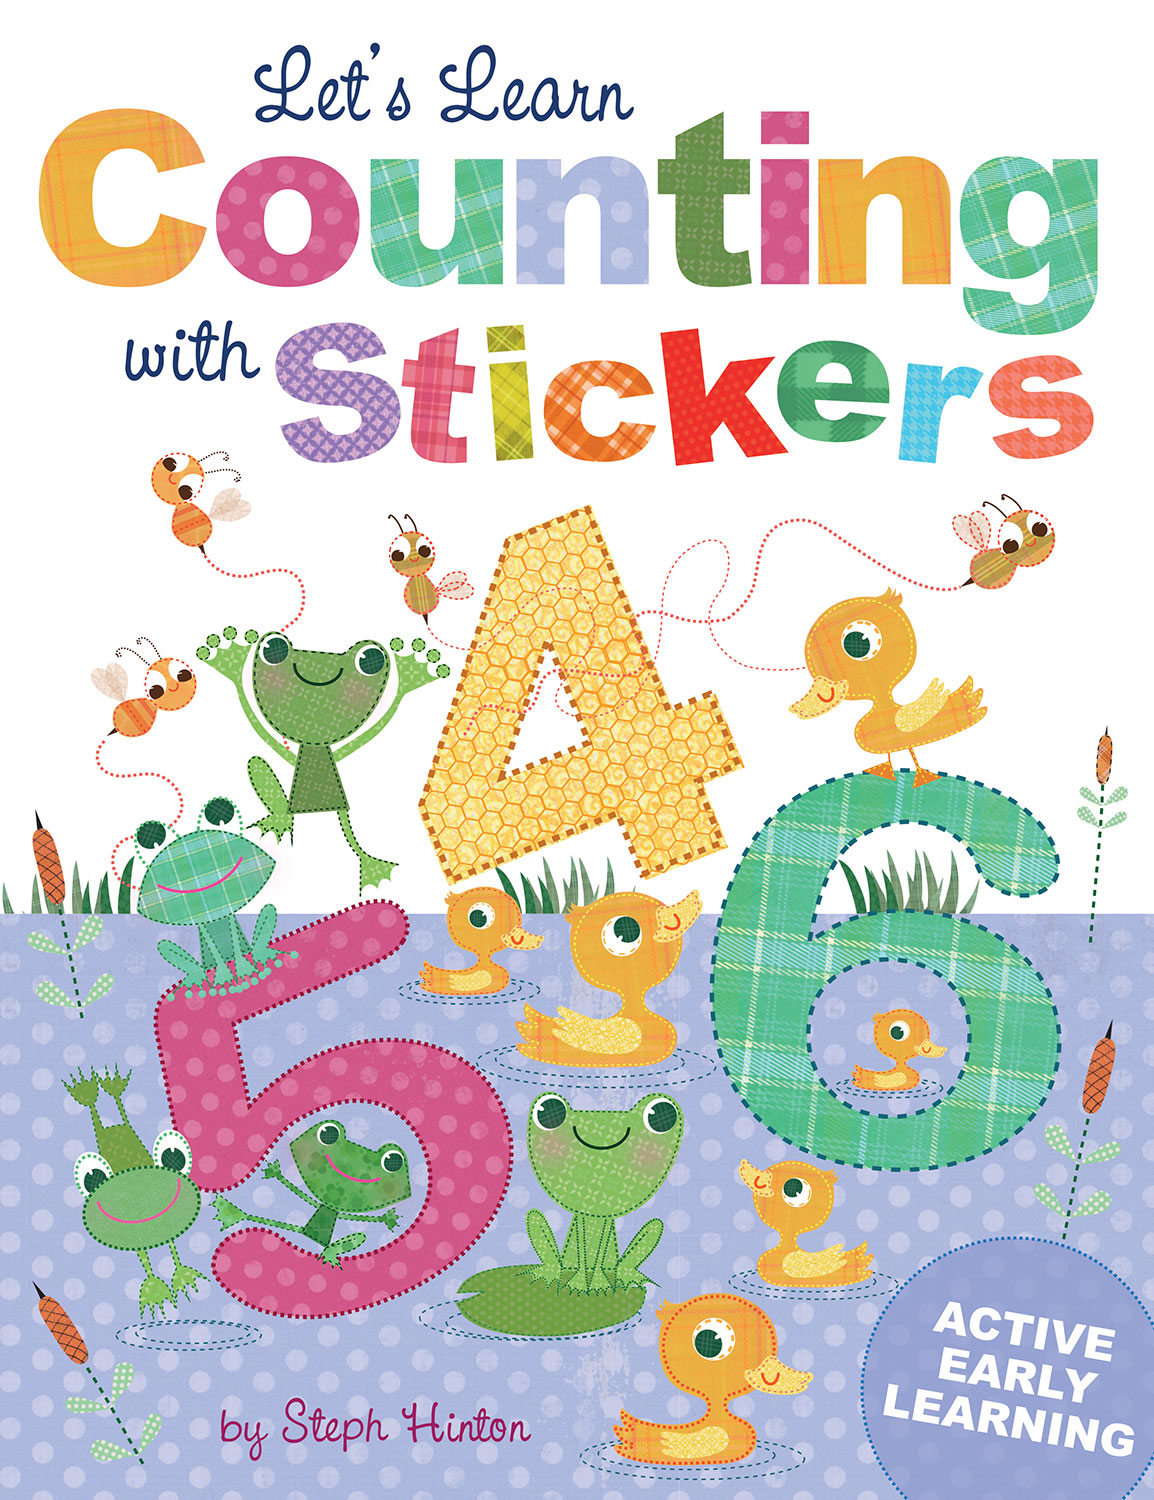 LET'S LEARN COUNTING WITH STICKERS